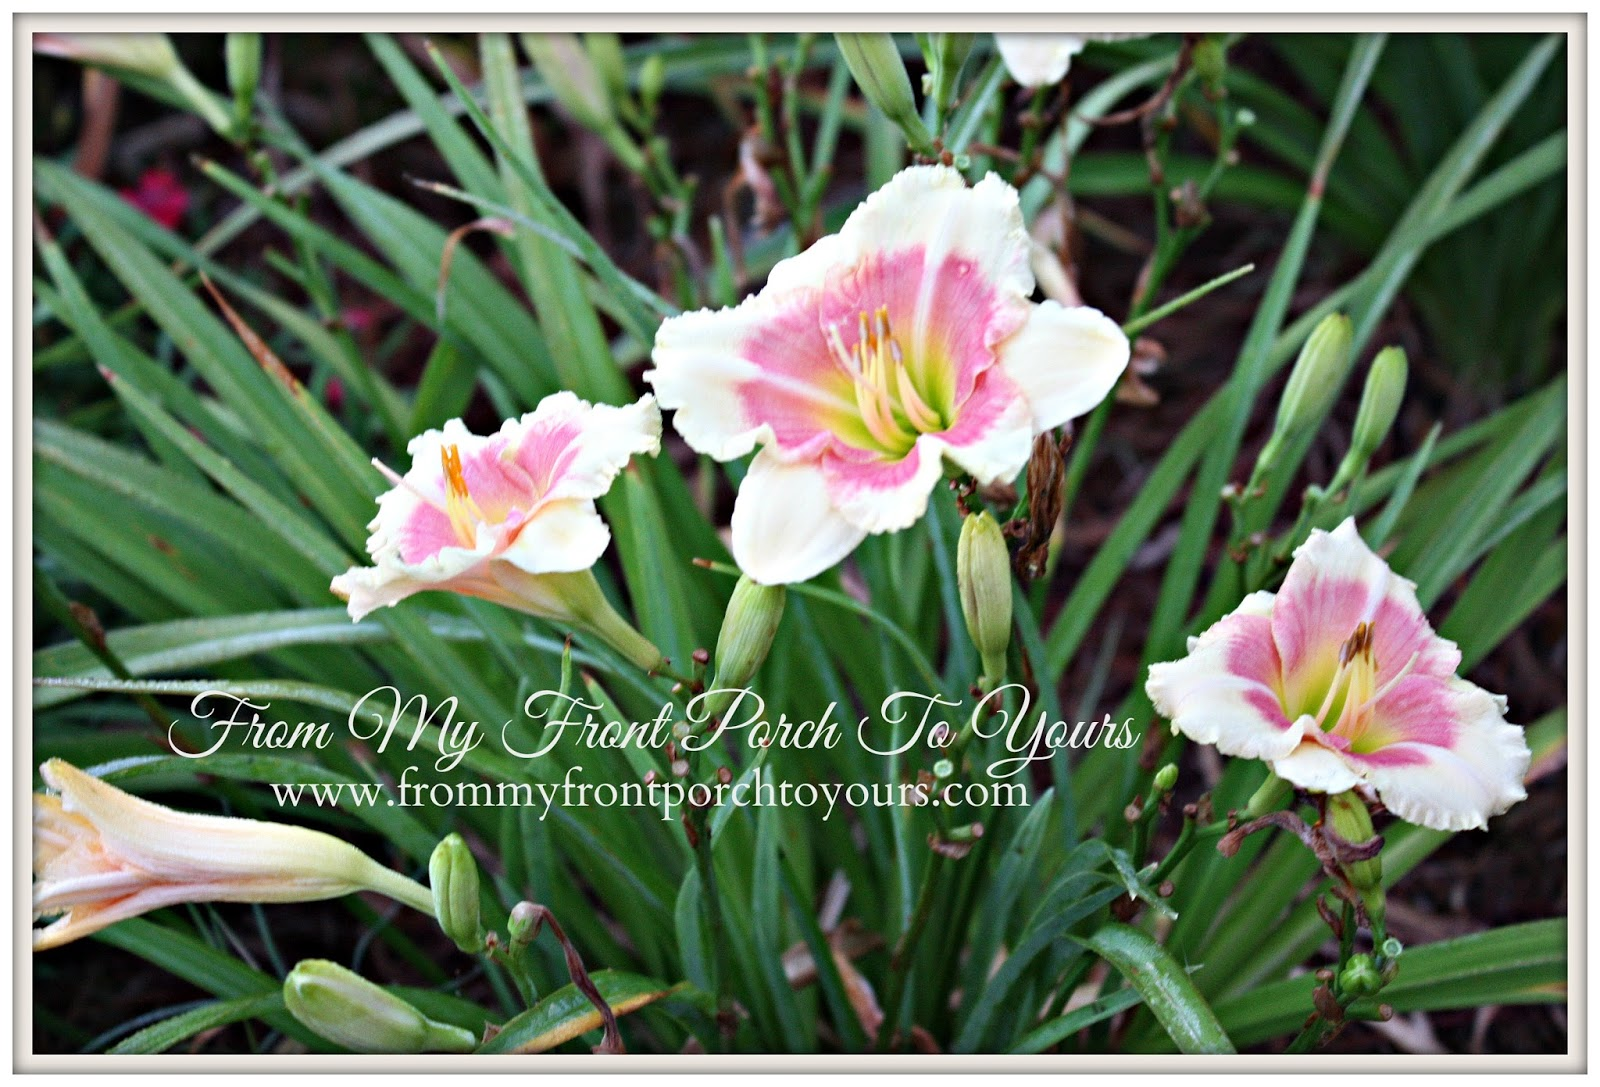 From My Front Porch To Yours- Flower Garden LIllies